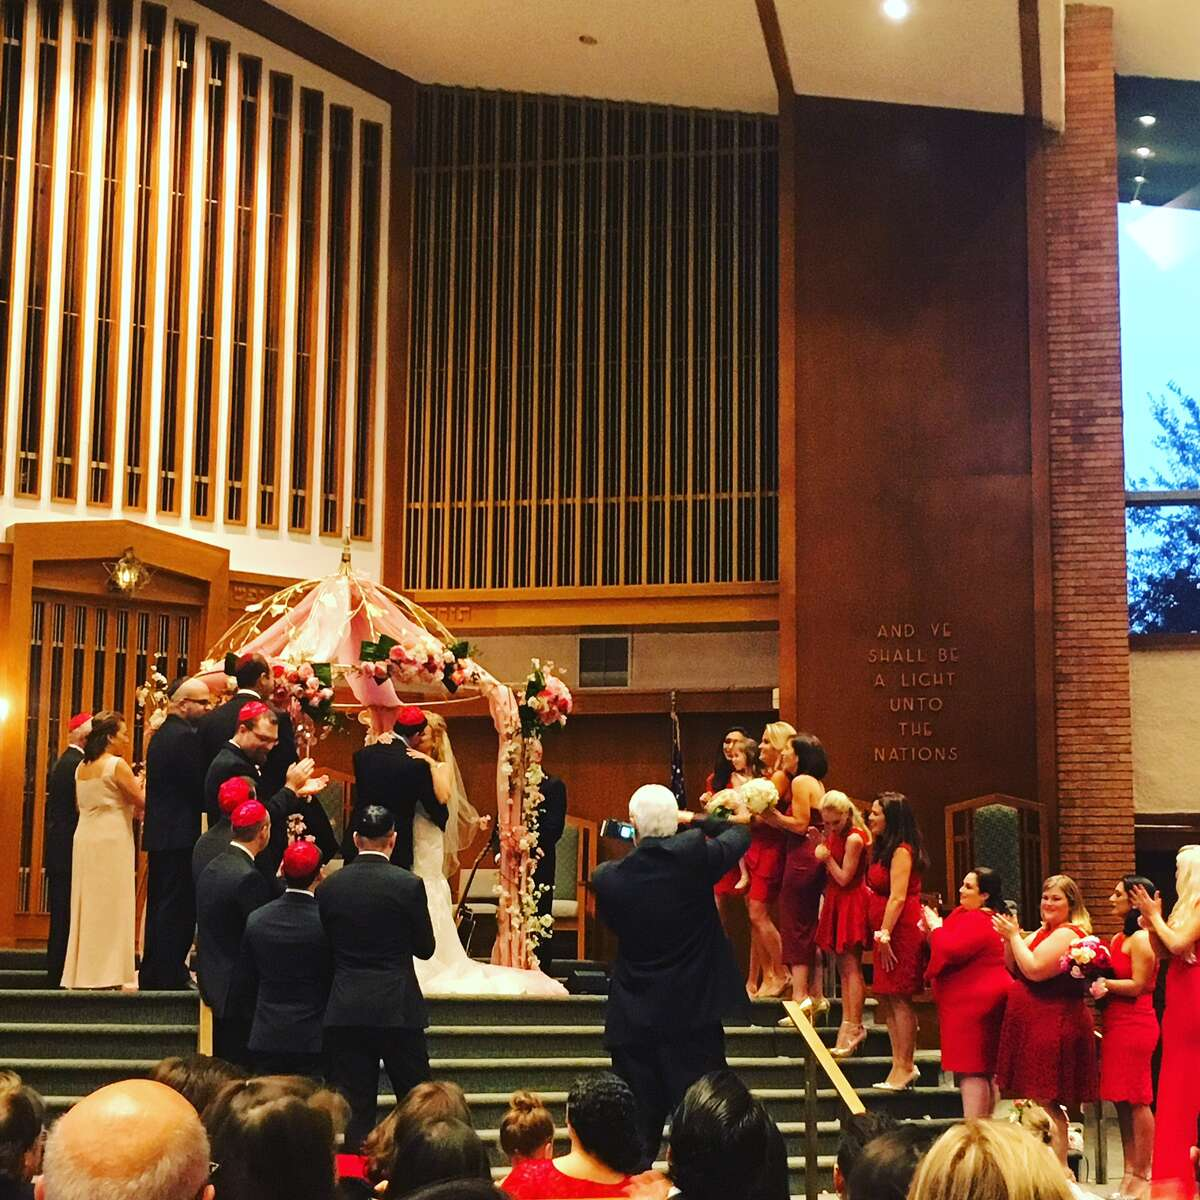 Erica Rose and Charles Sanders tie the knot at Congregation Emanu El on Sunday, December 3.